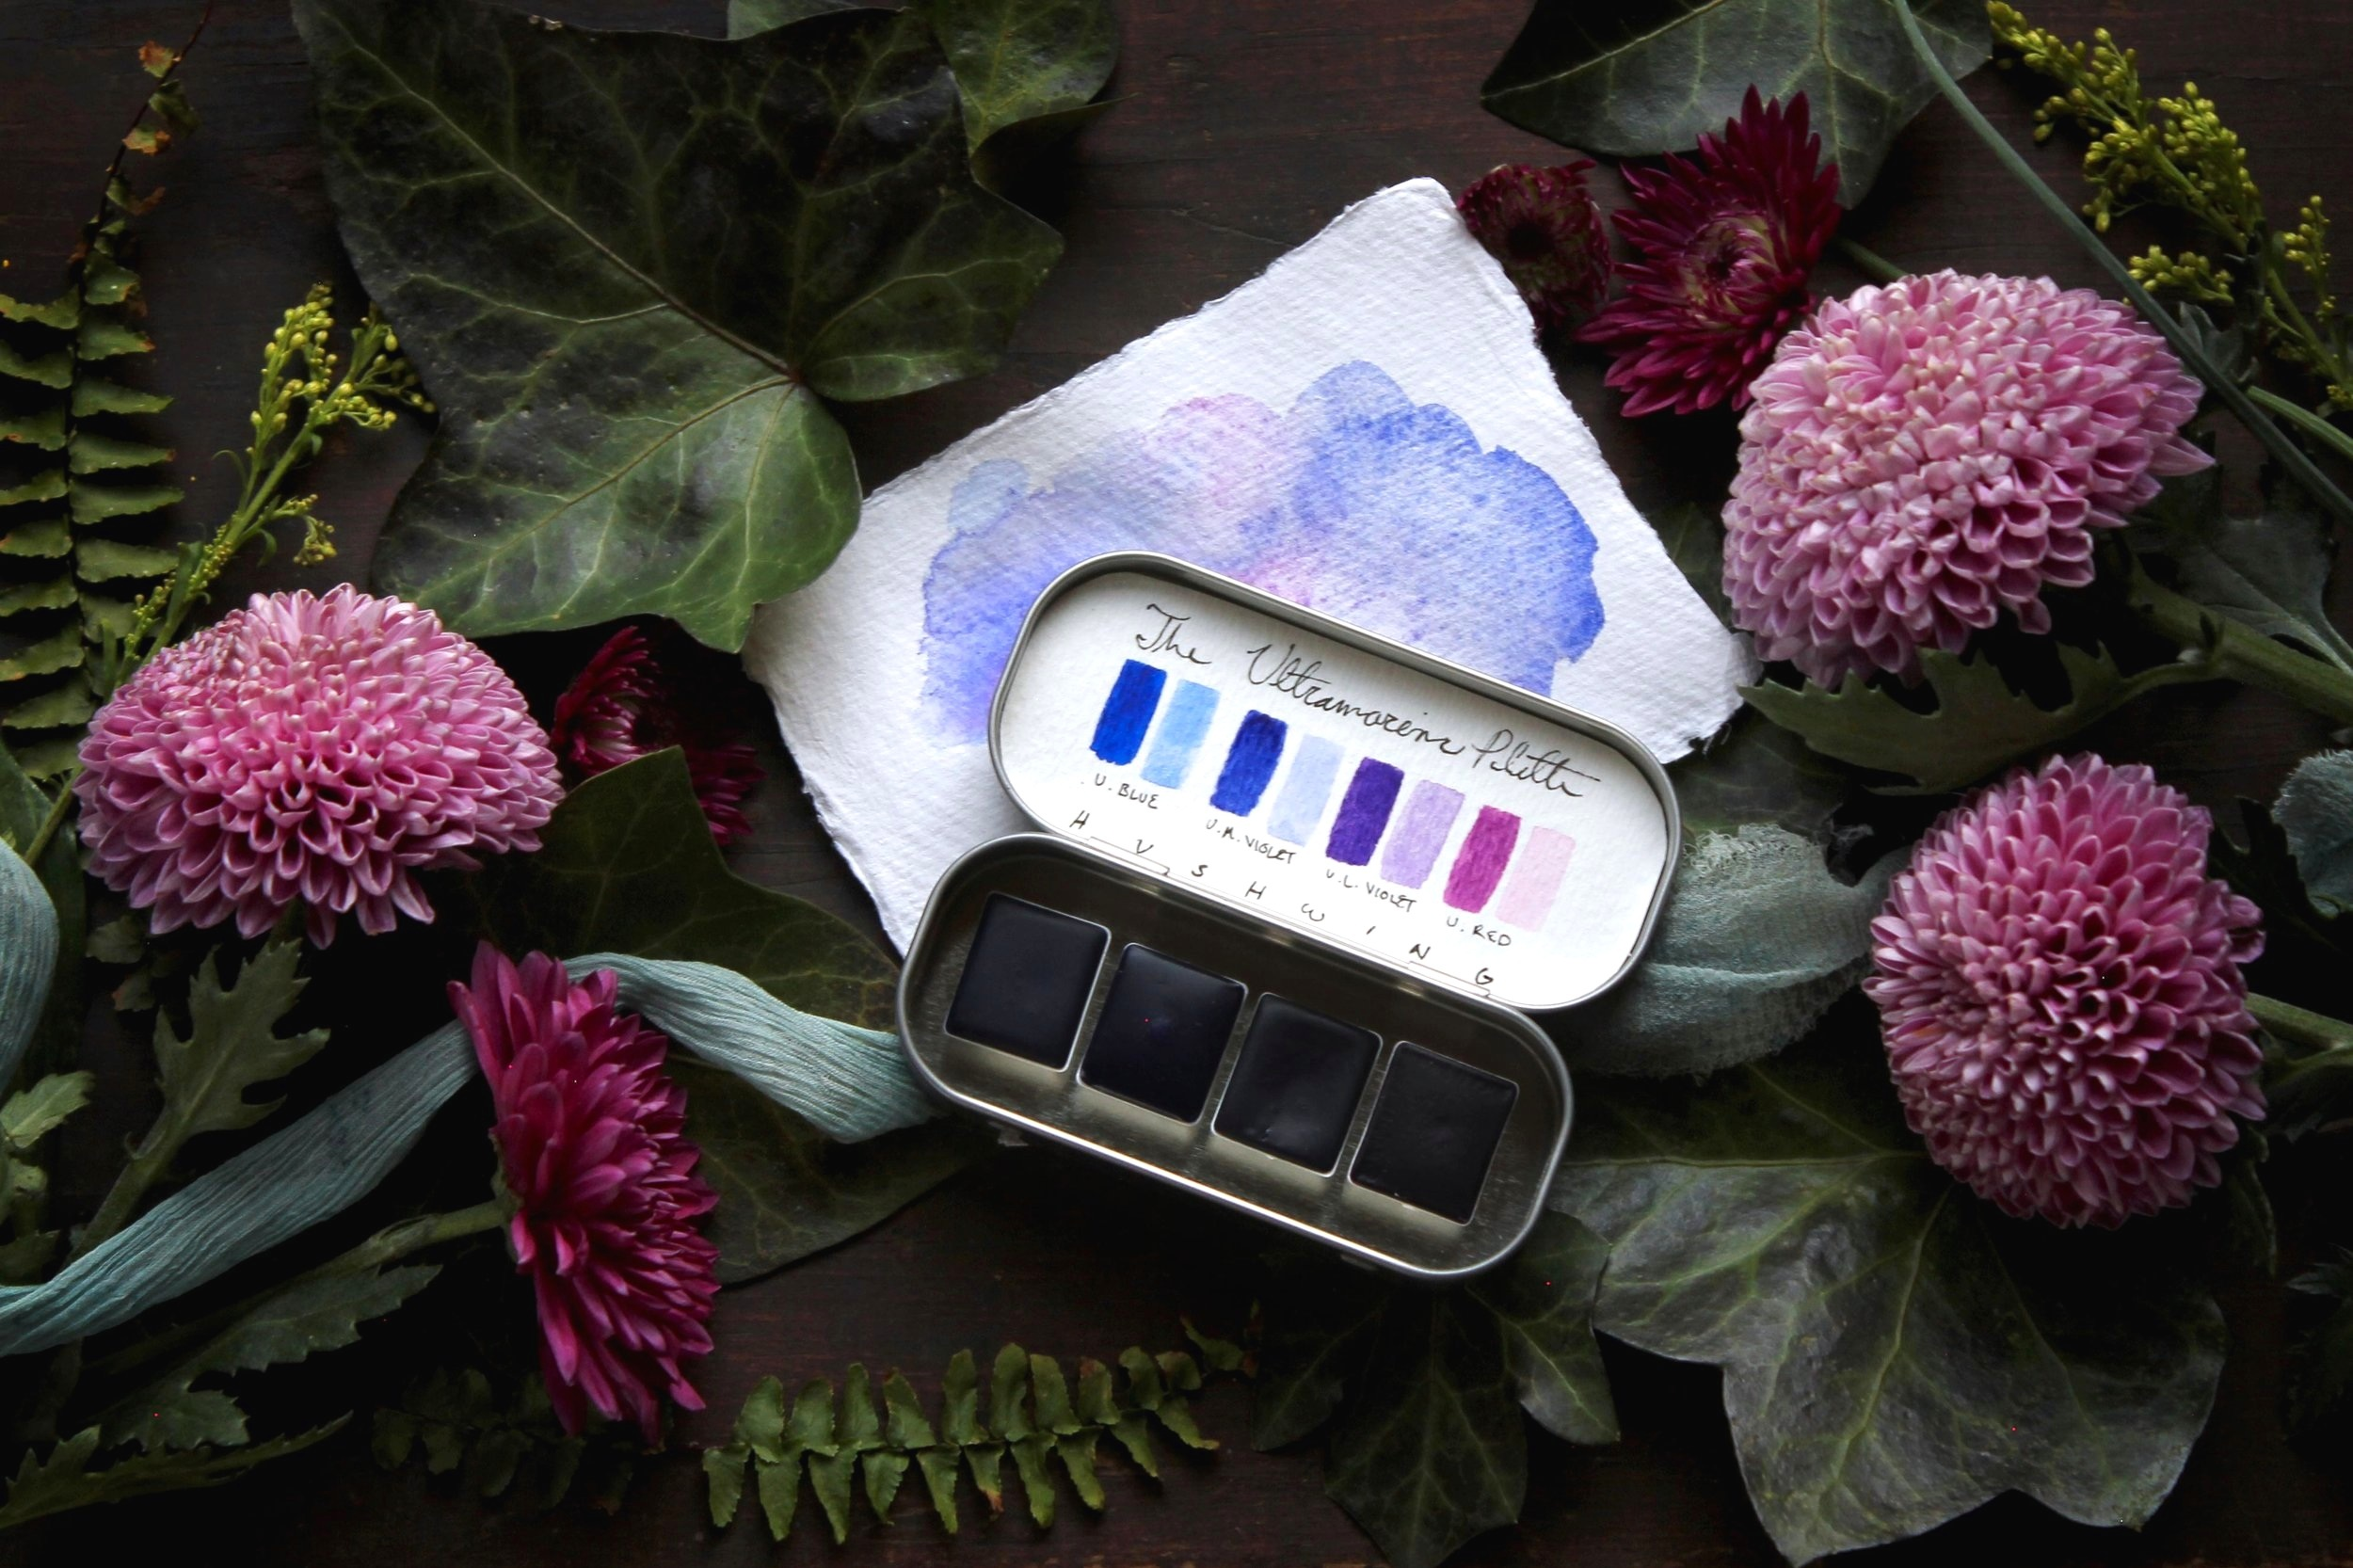 The Ultramarine Palette - Explore our limited edition collection of artist's supplies!